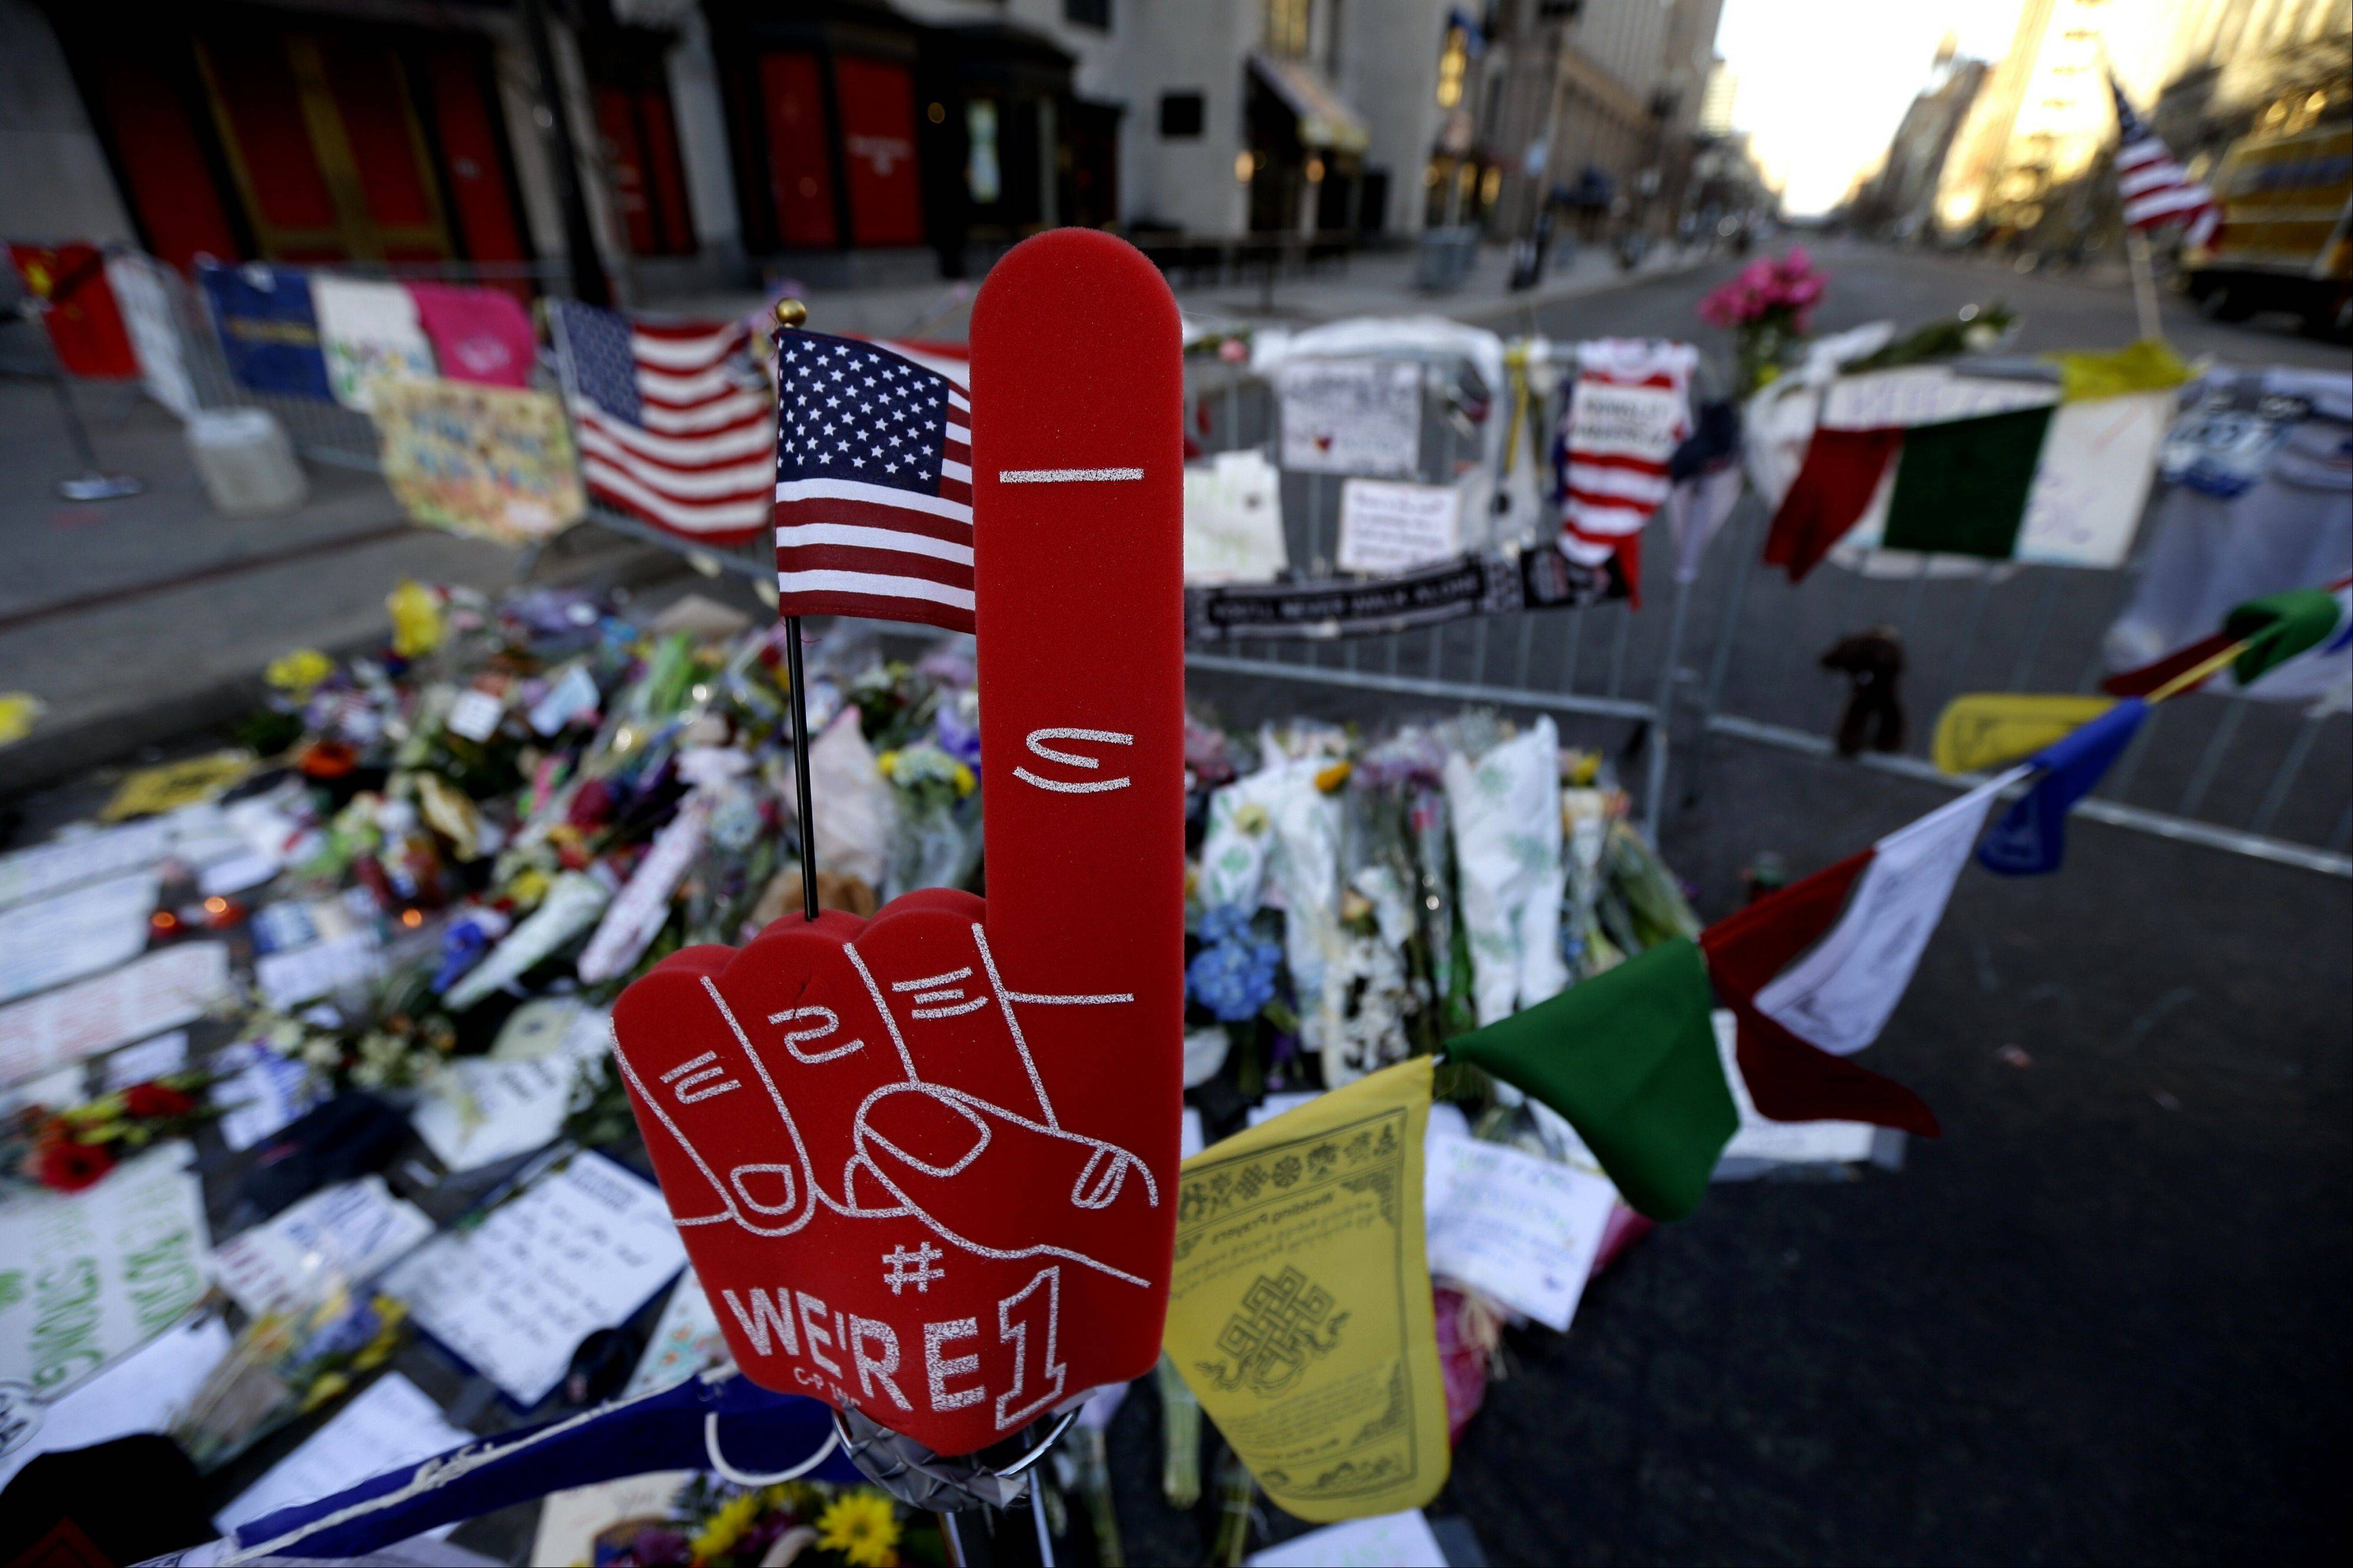 A foam finger stands at a makeshift memorial on Boylston Street in Boston, near the blast site of the Boston Marathon explosions, Thursday, April 18, 2013. The city continues to cope following Monday�s explosions near the finish line of the marathon.